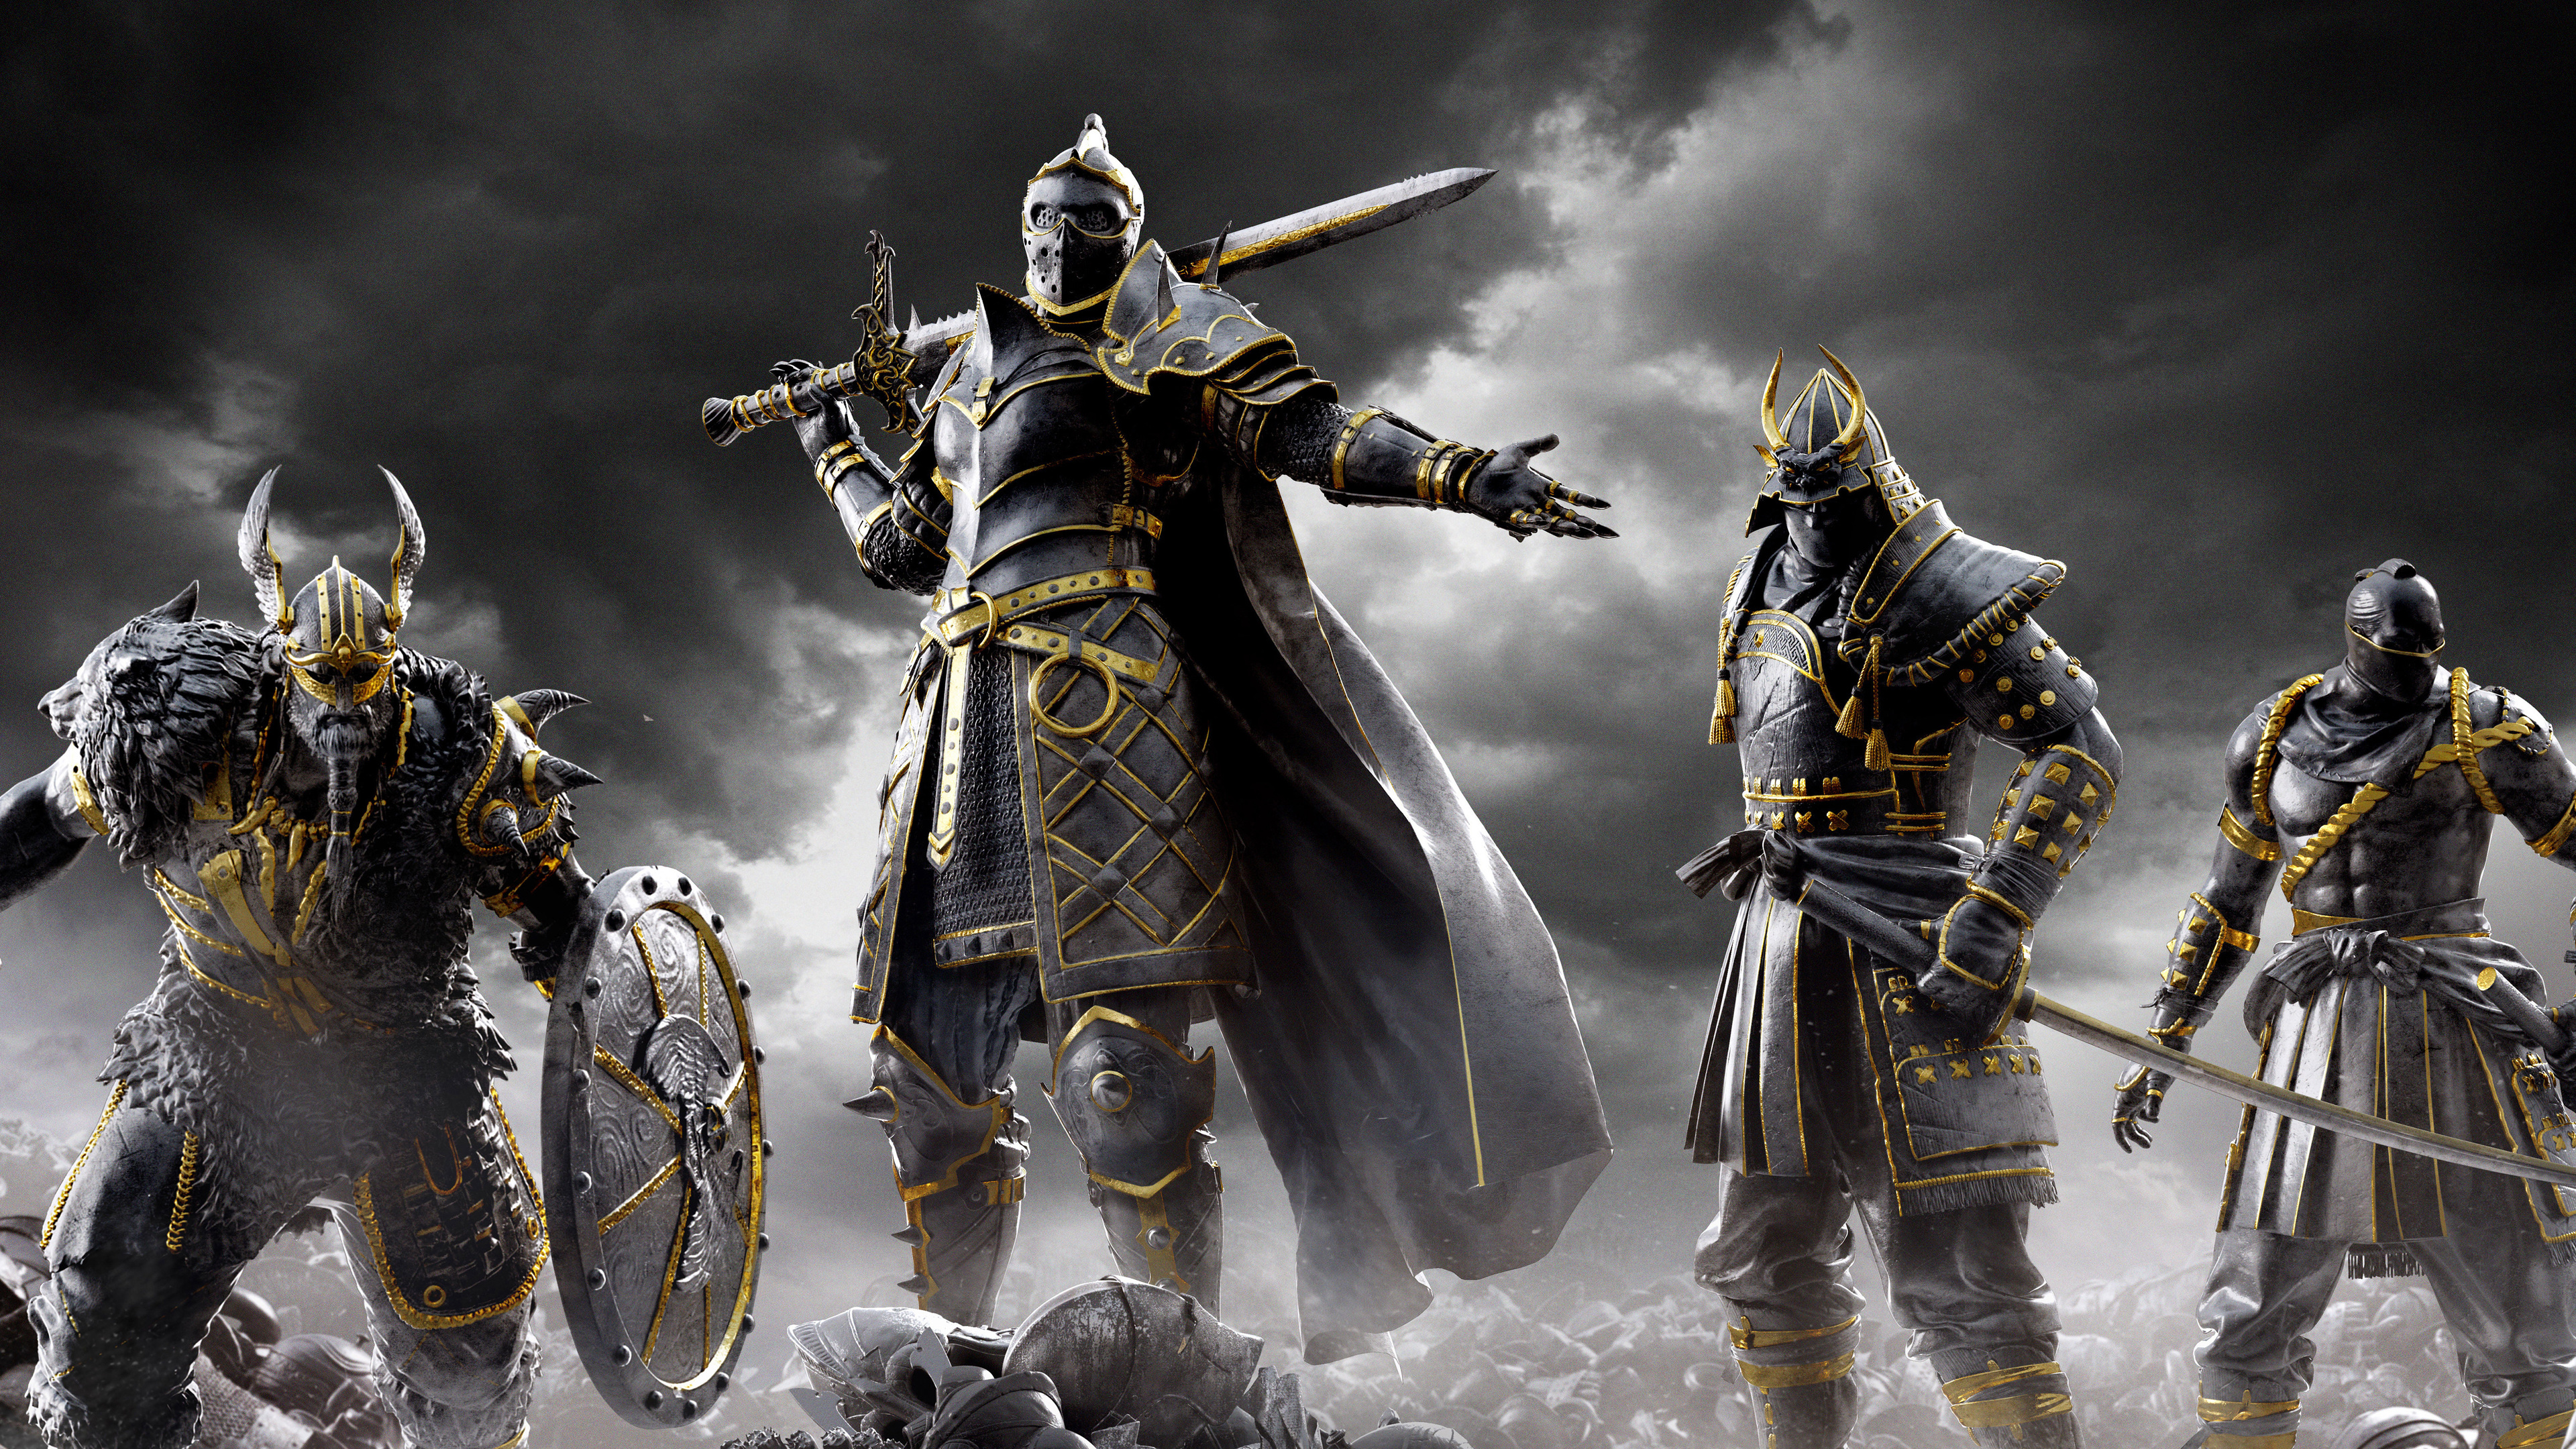 for honor 5k 1537690984 - For Honor 5k - xbox games wallpapers, ps games wallpapers, pc games wallpapers, hd-wallpapers, games wallpapers, for honor wallpapers, 5k wallpapers, 4k-wallpapers, 2018 games wallpapers